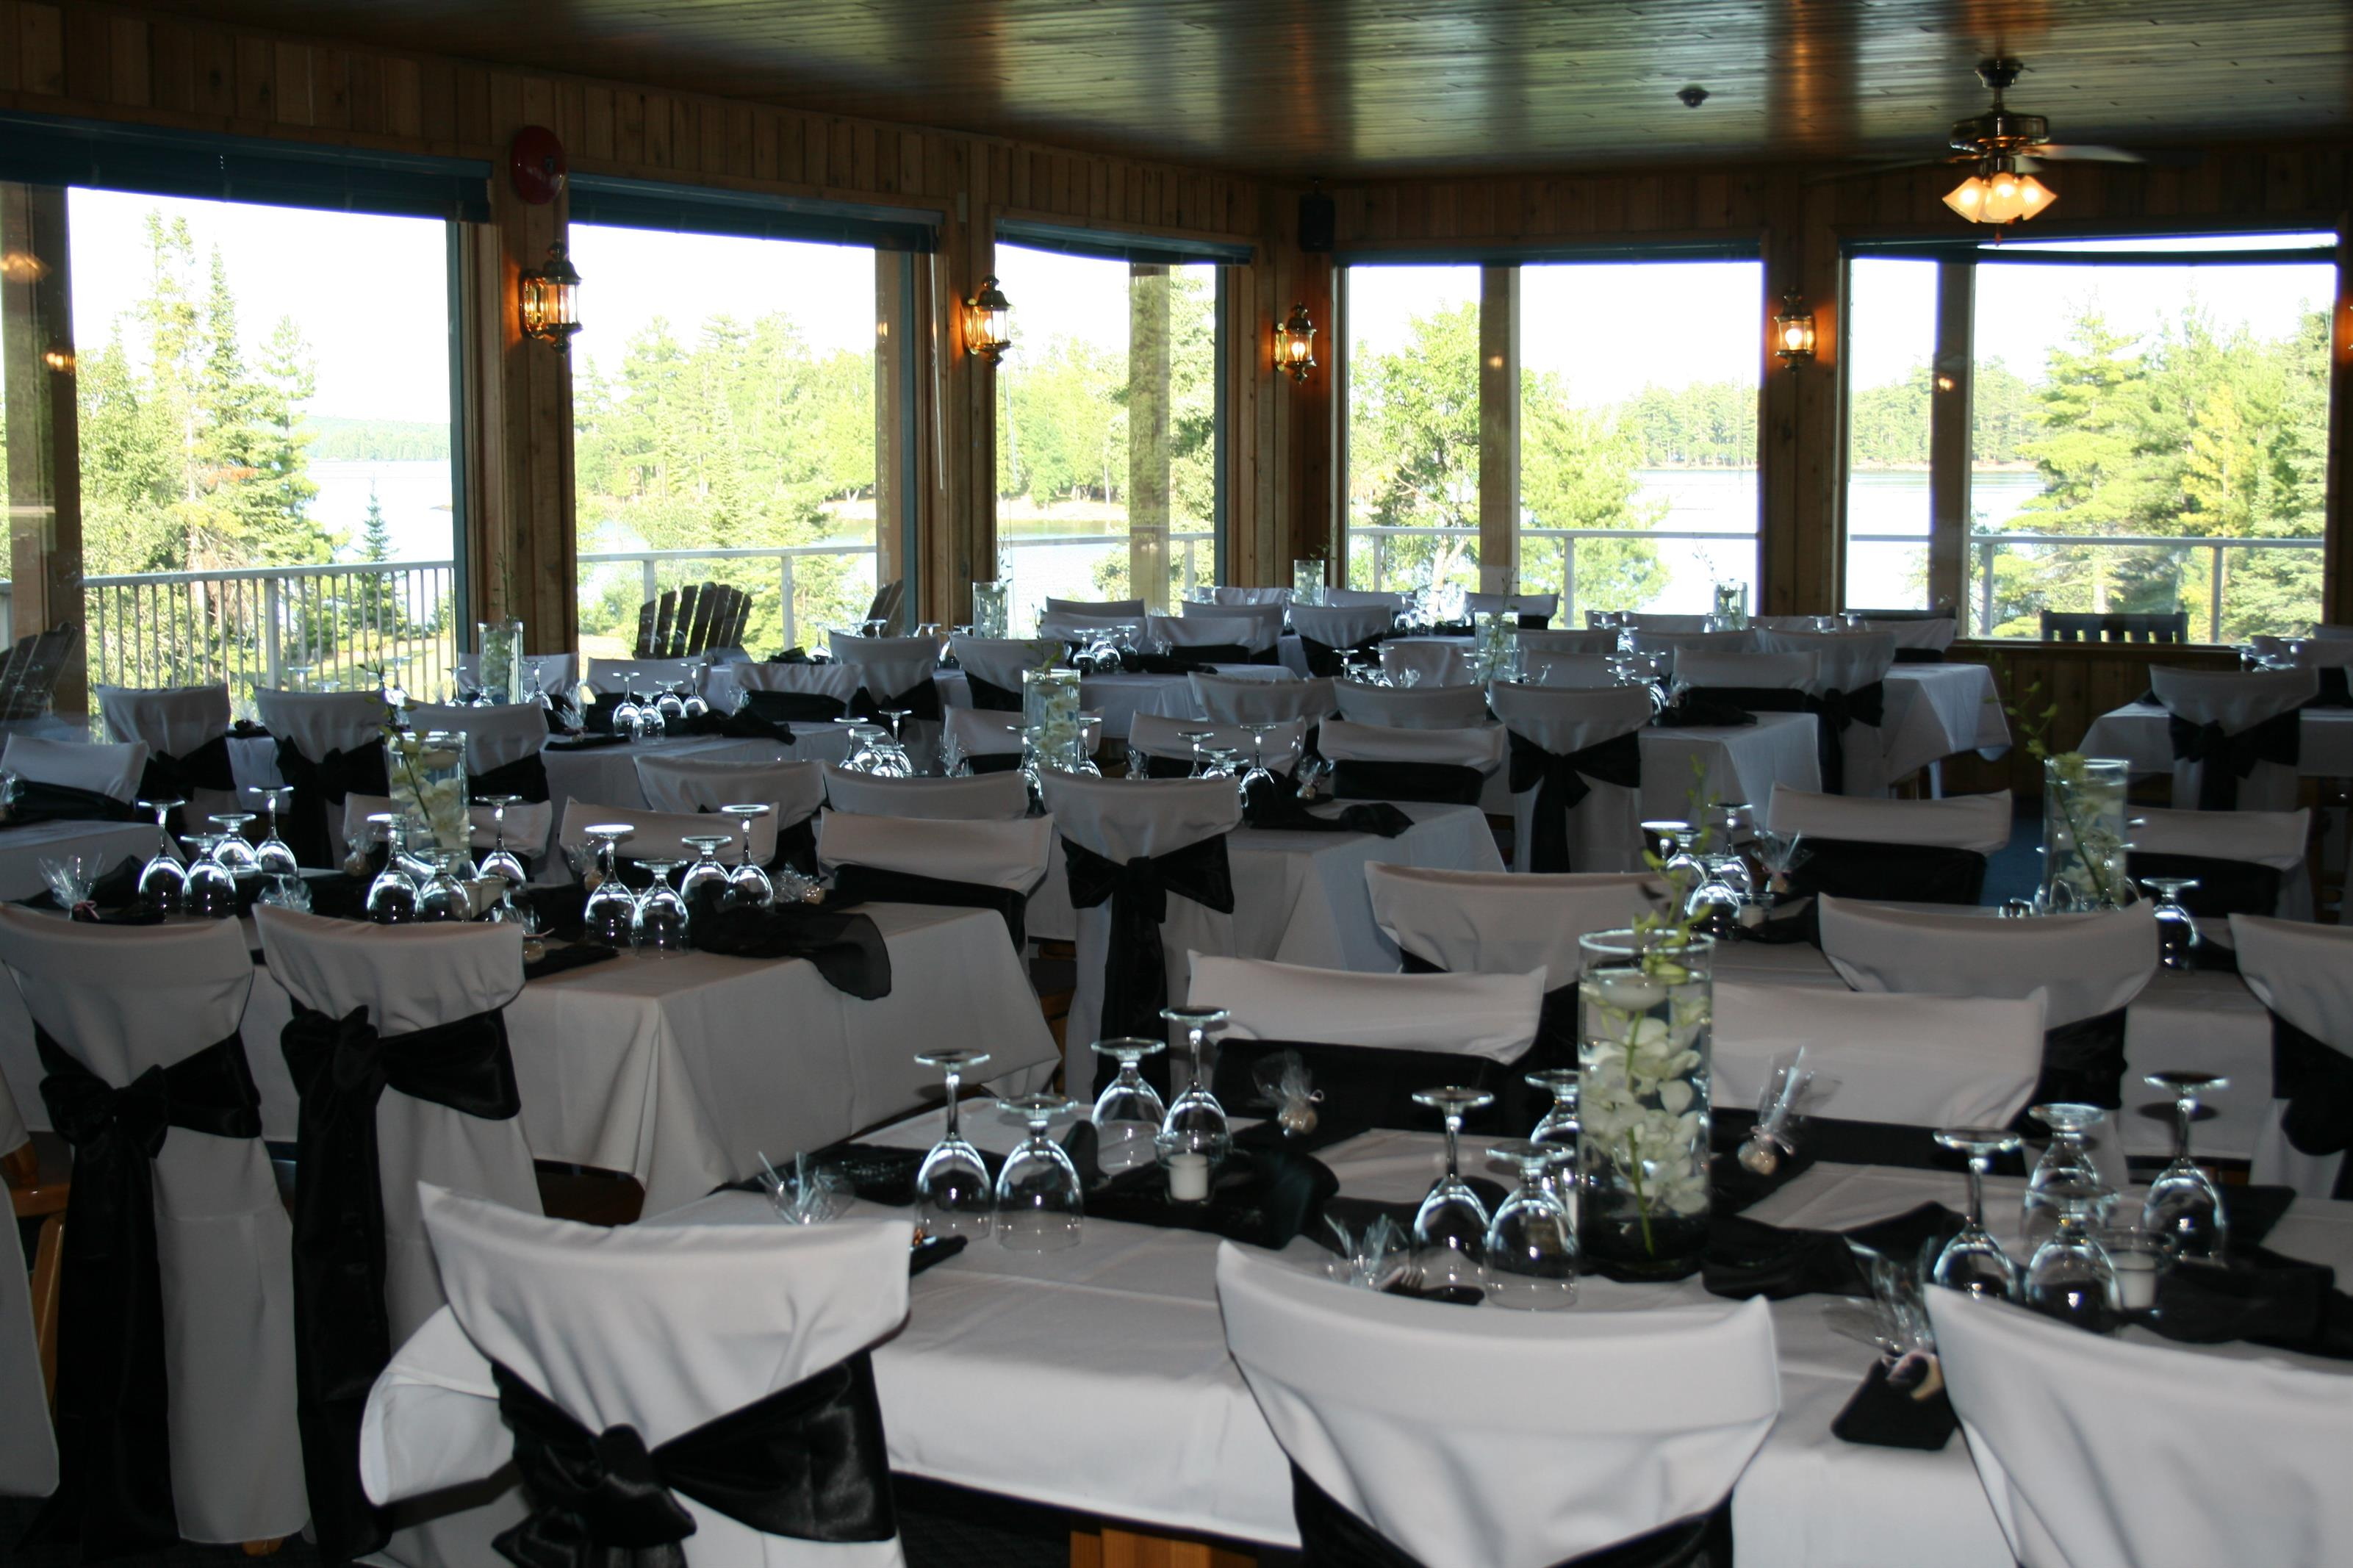 dining area of the lodge set up for an event